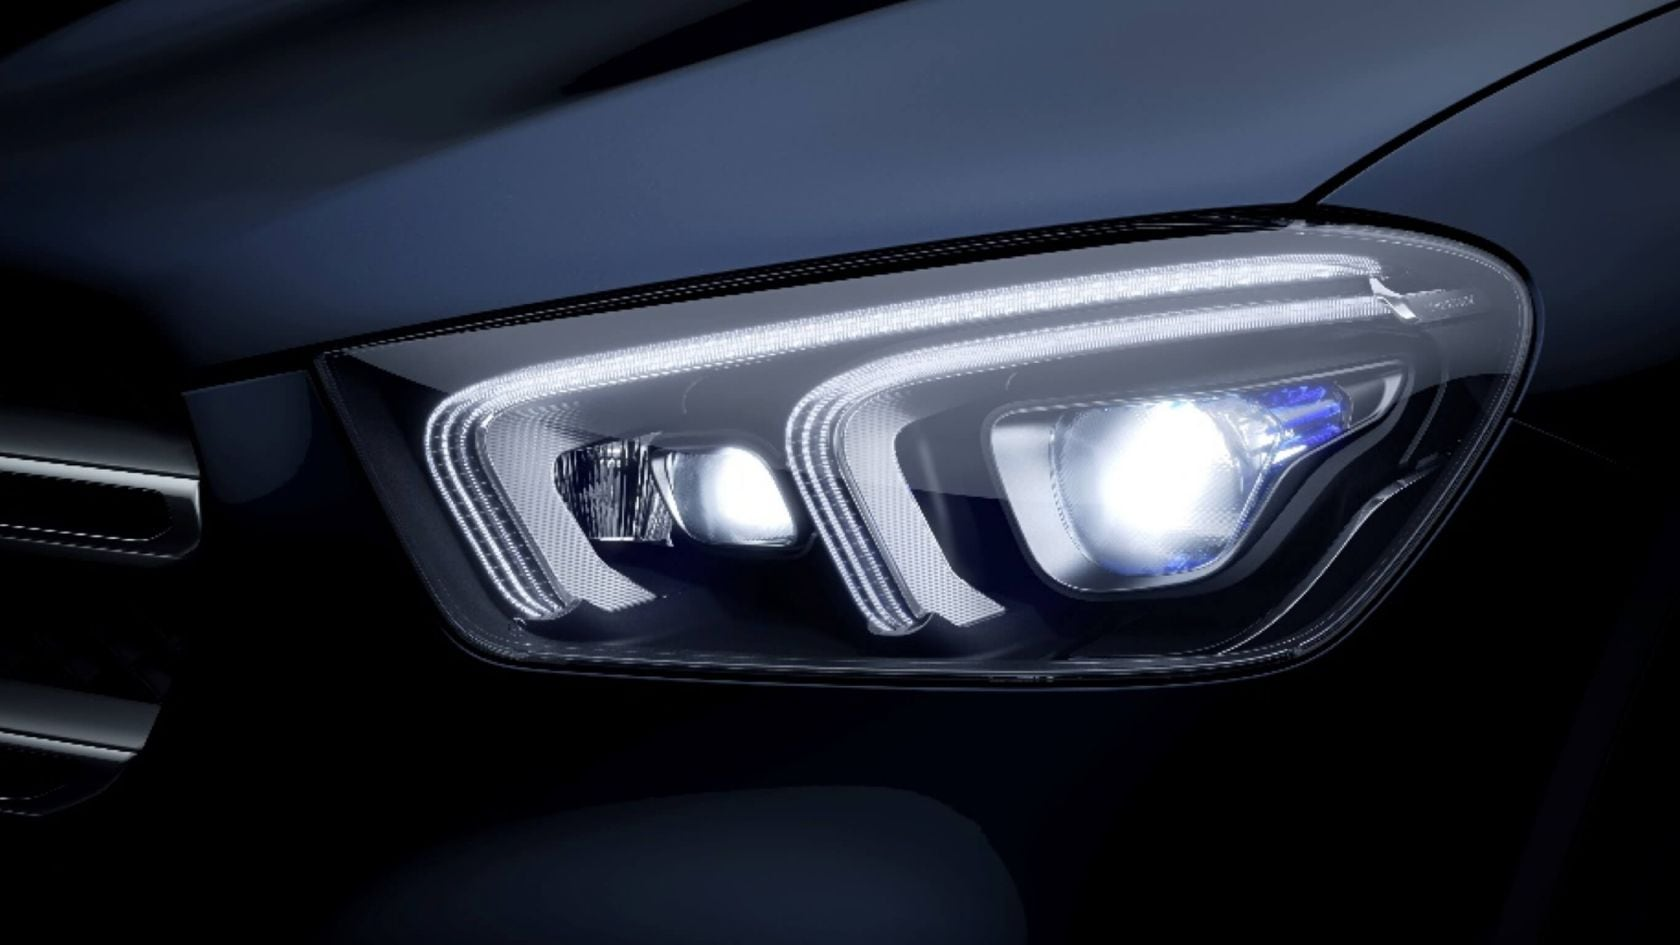 Mercedes-Benz GLE SUV: fascinating LED light pattern